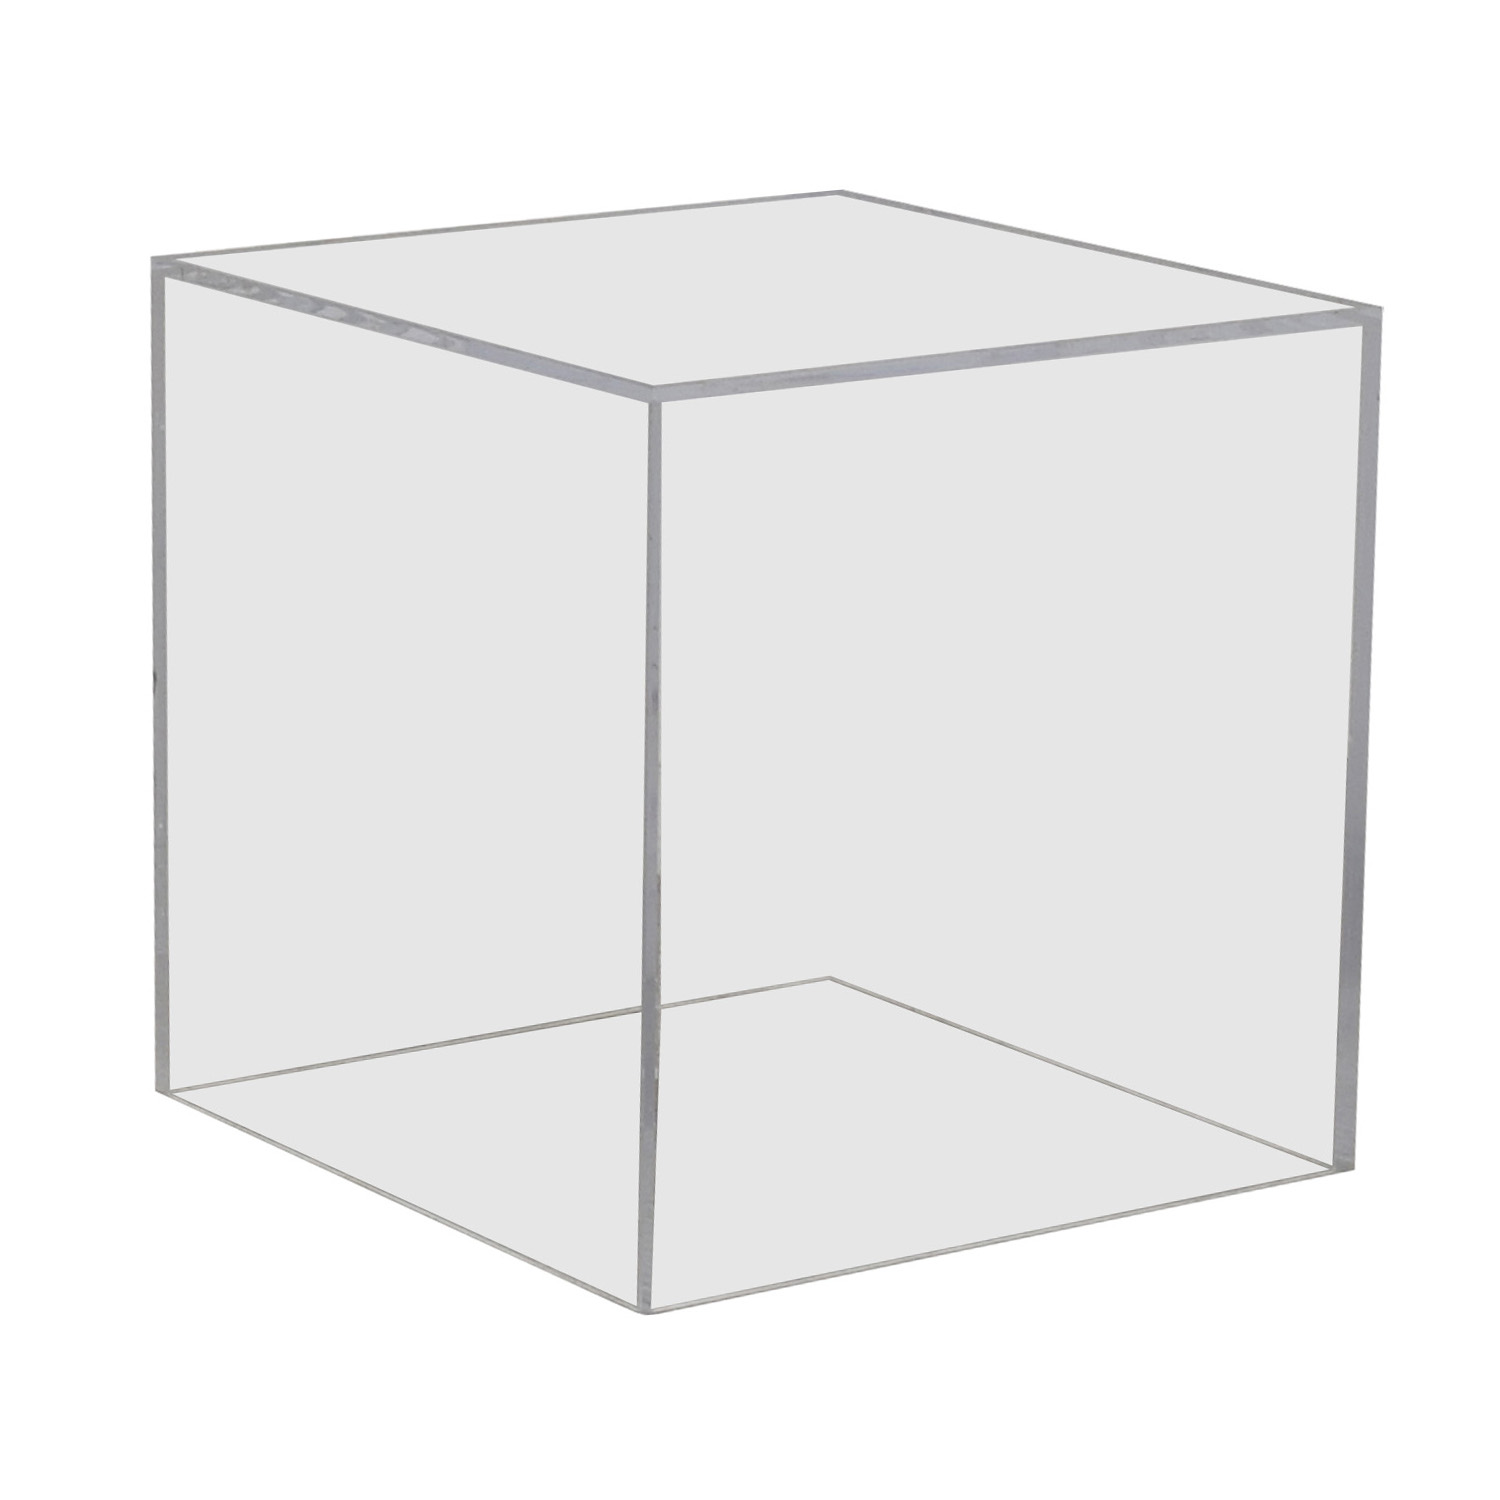 Admirable 90 Off Vintage Lucite Ghost Cube Side Table Tables Download Free Architecture Designs Remcamadebymaigaardcom